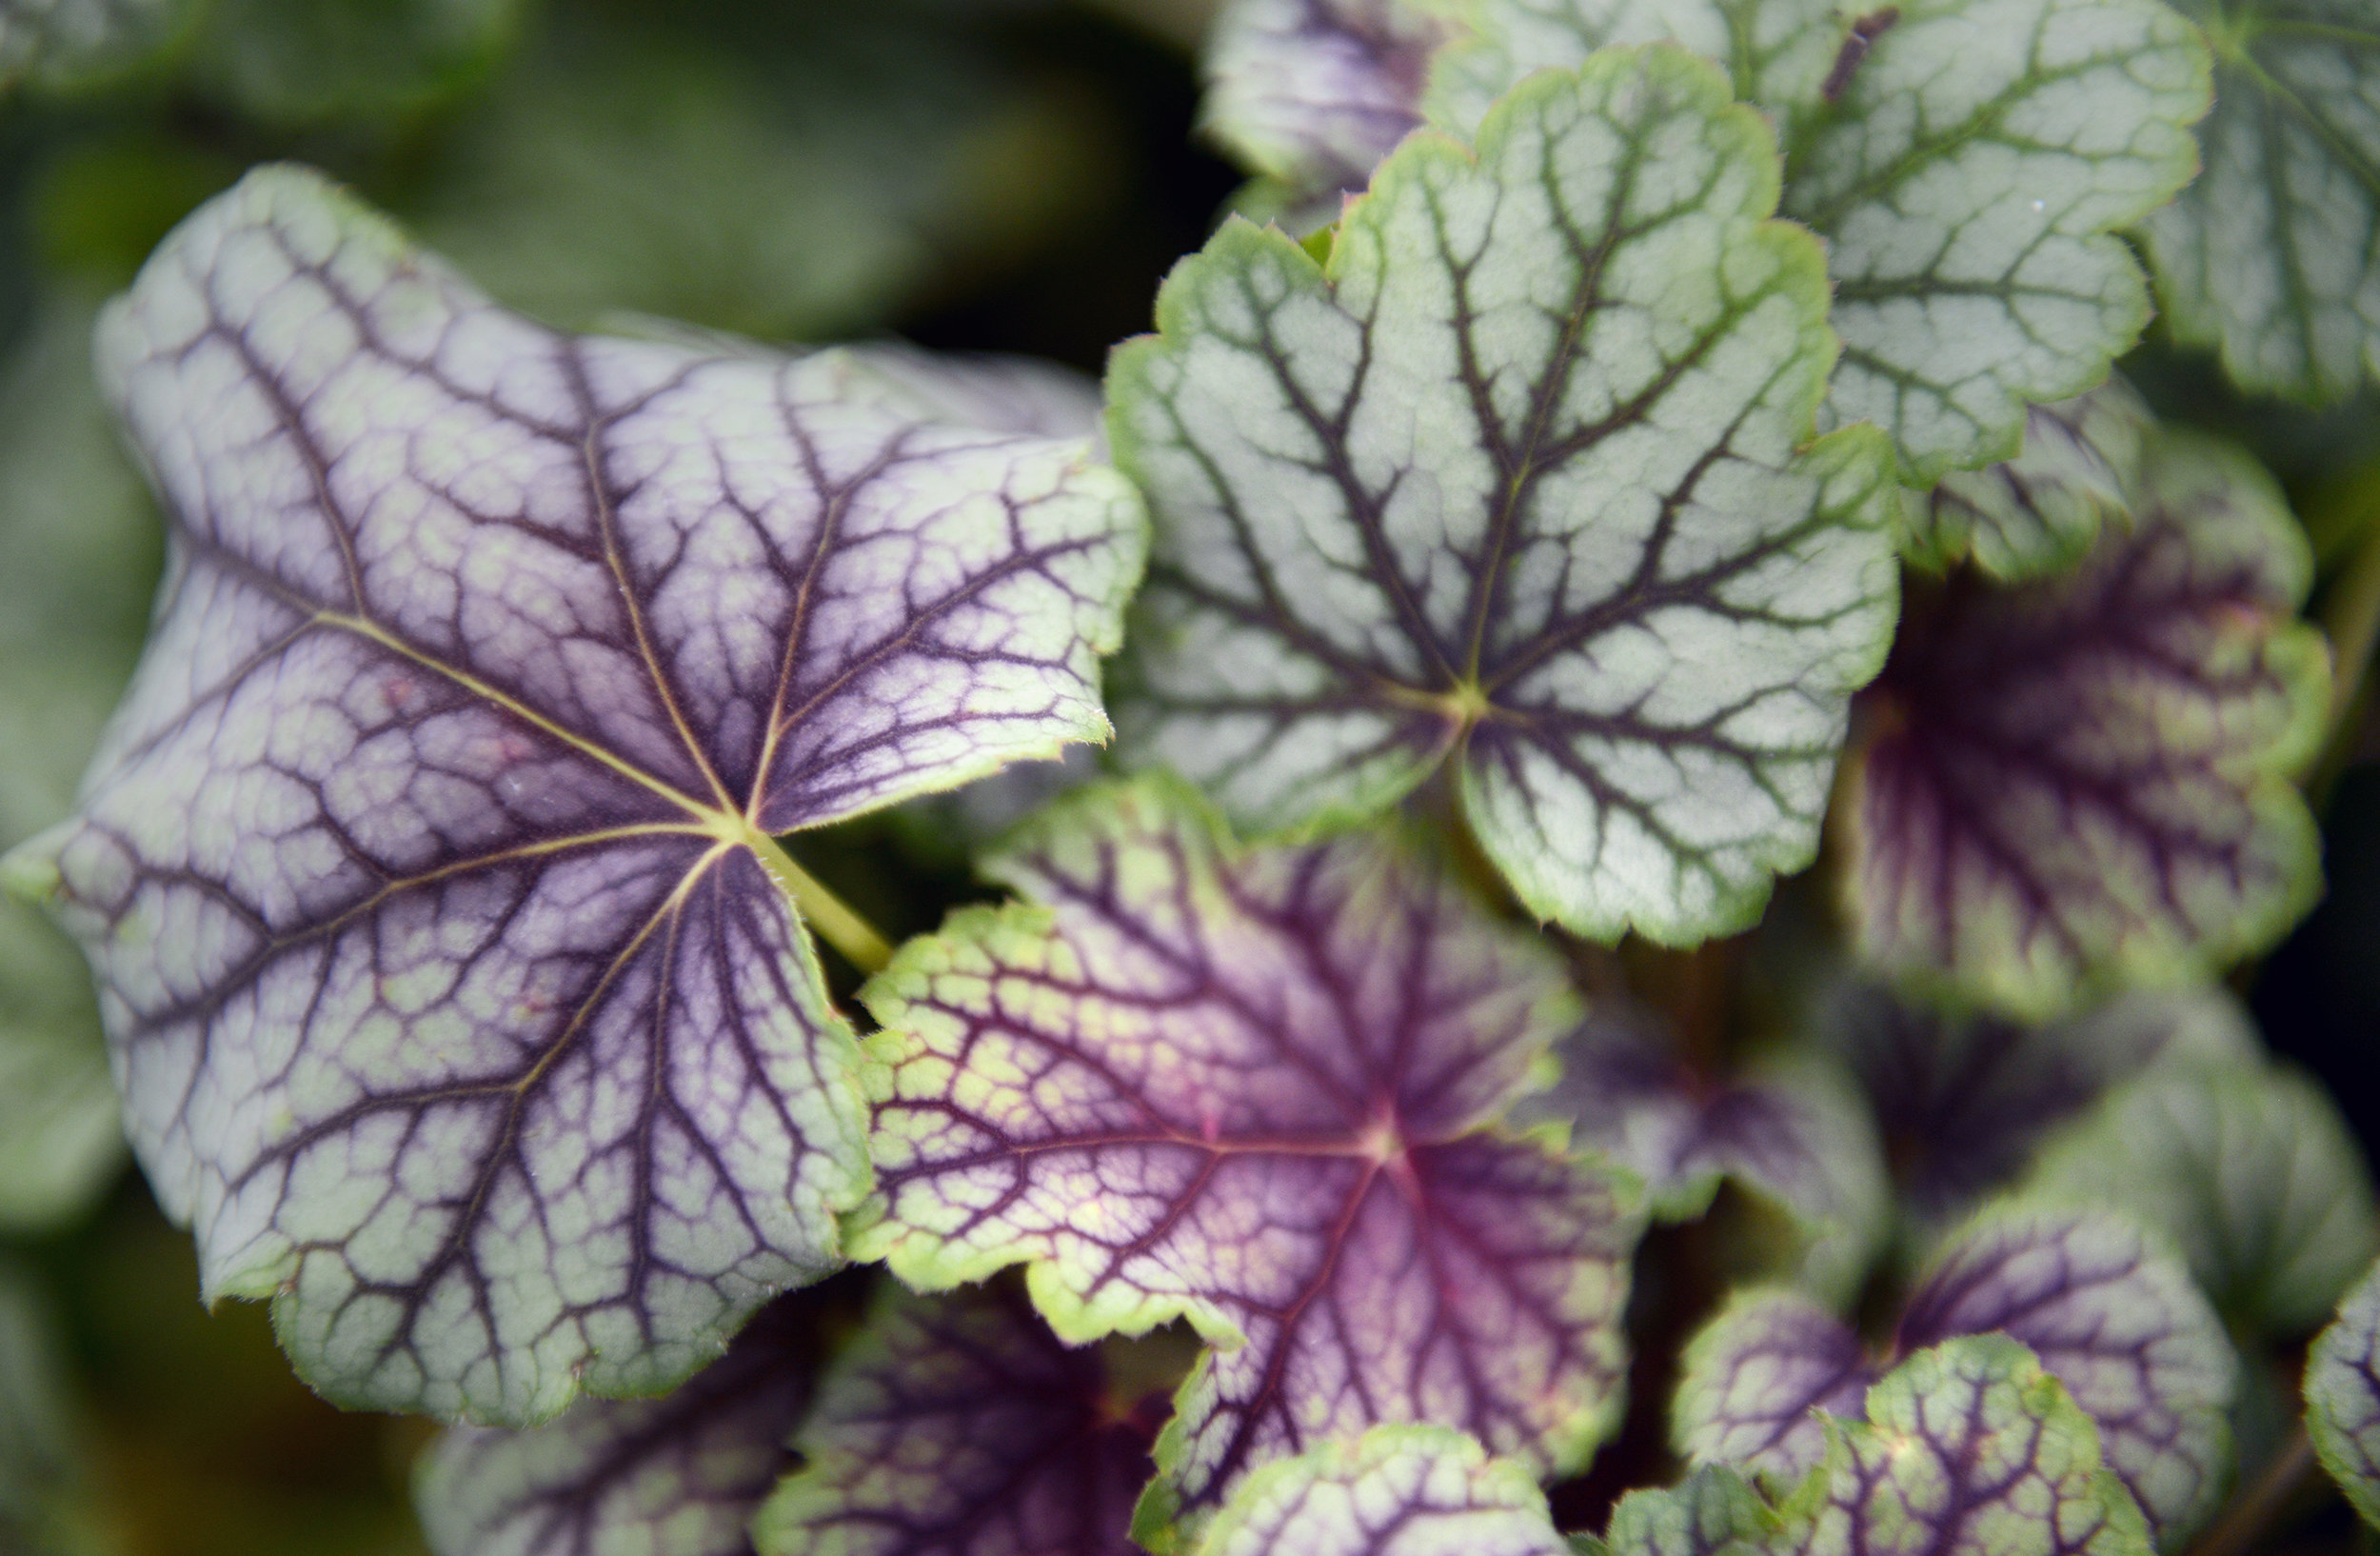 Hooked on Heuchera - This excellent ground cover foliage is our new plant of the moment! Great for planters on the patio or in beds around the garden. Lots of colours to choose from and easy to grow in any soil type. They're happy in the sun or semi shade and keep their colour all year round! £8.99